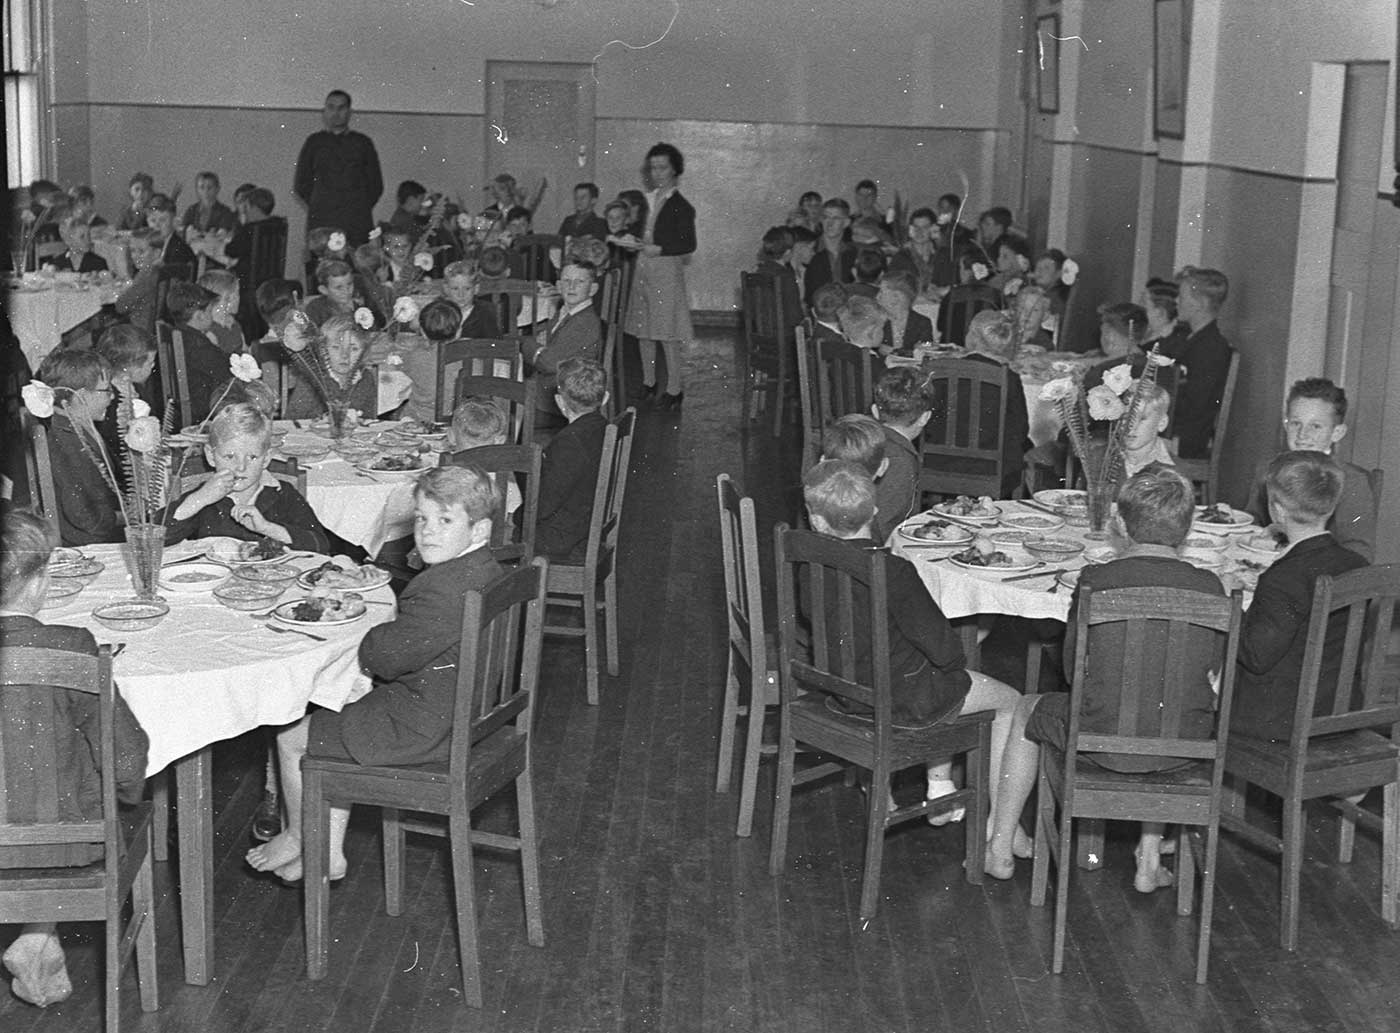 A dining room with numerous groups of young boys seated at round tables. The boys wear coats, shorts and have bare feet. A man and a woman stand at the far end of the room. Each of the tables is set, with a vase of flowers at the centre. - click to view larger image